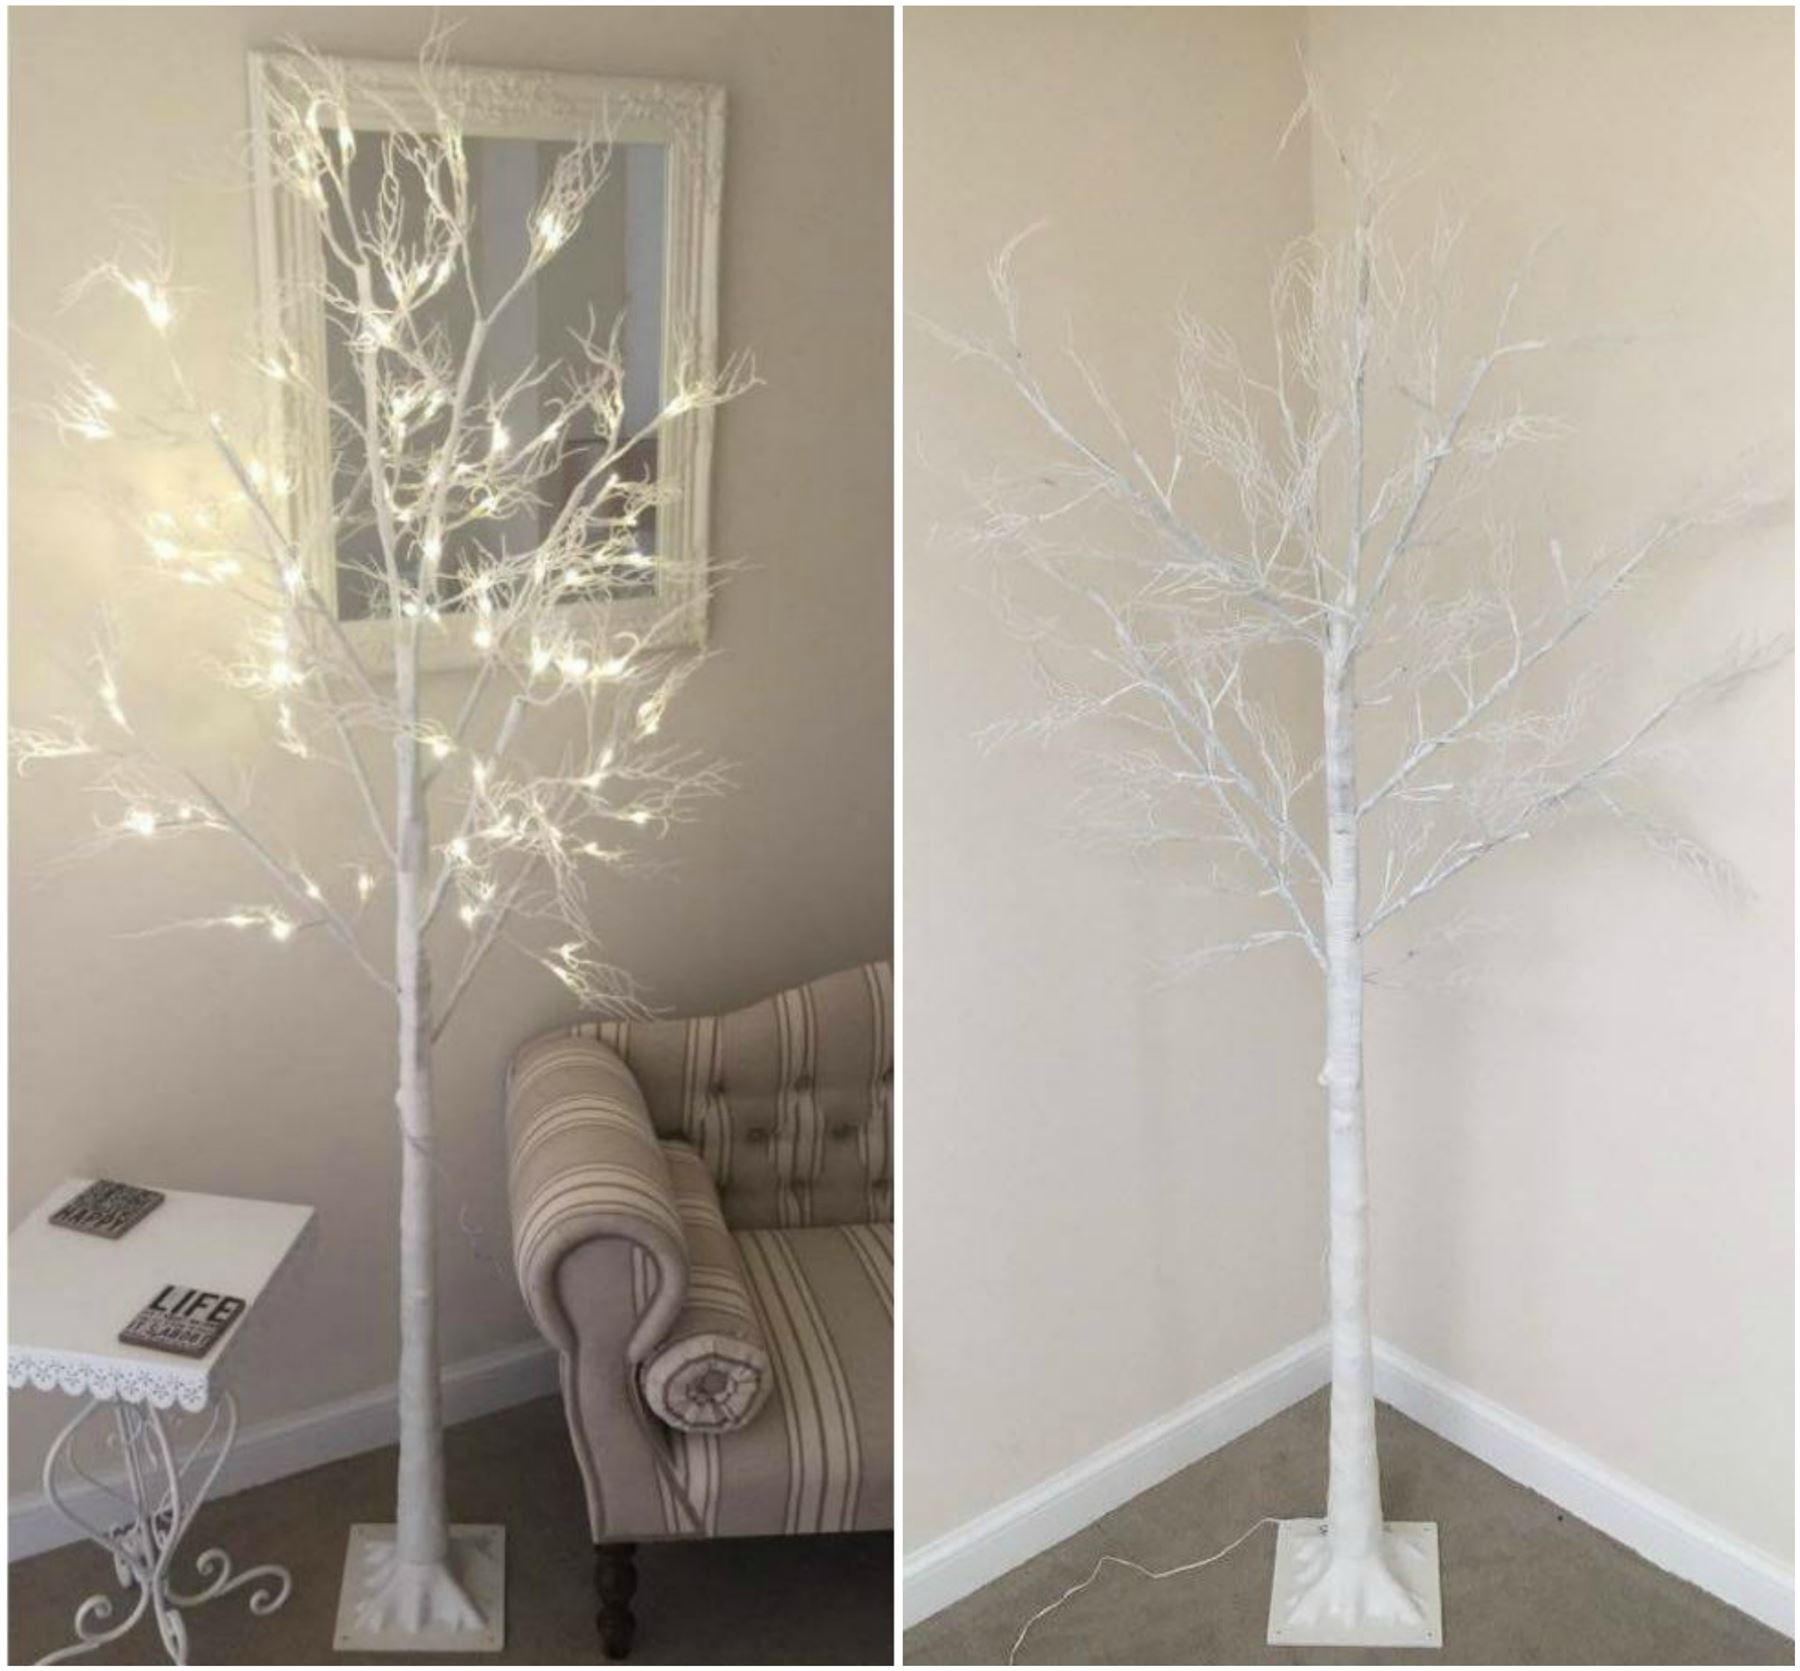 6ft Christmas Twig Tree Pre Lit 120 LED Warm White Lights Indoor ...